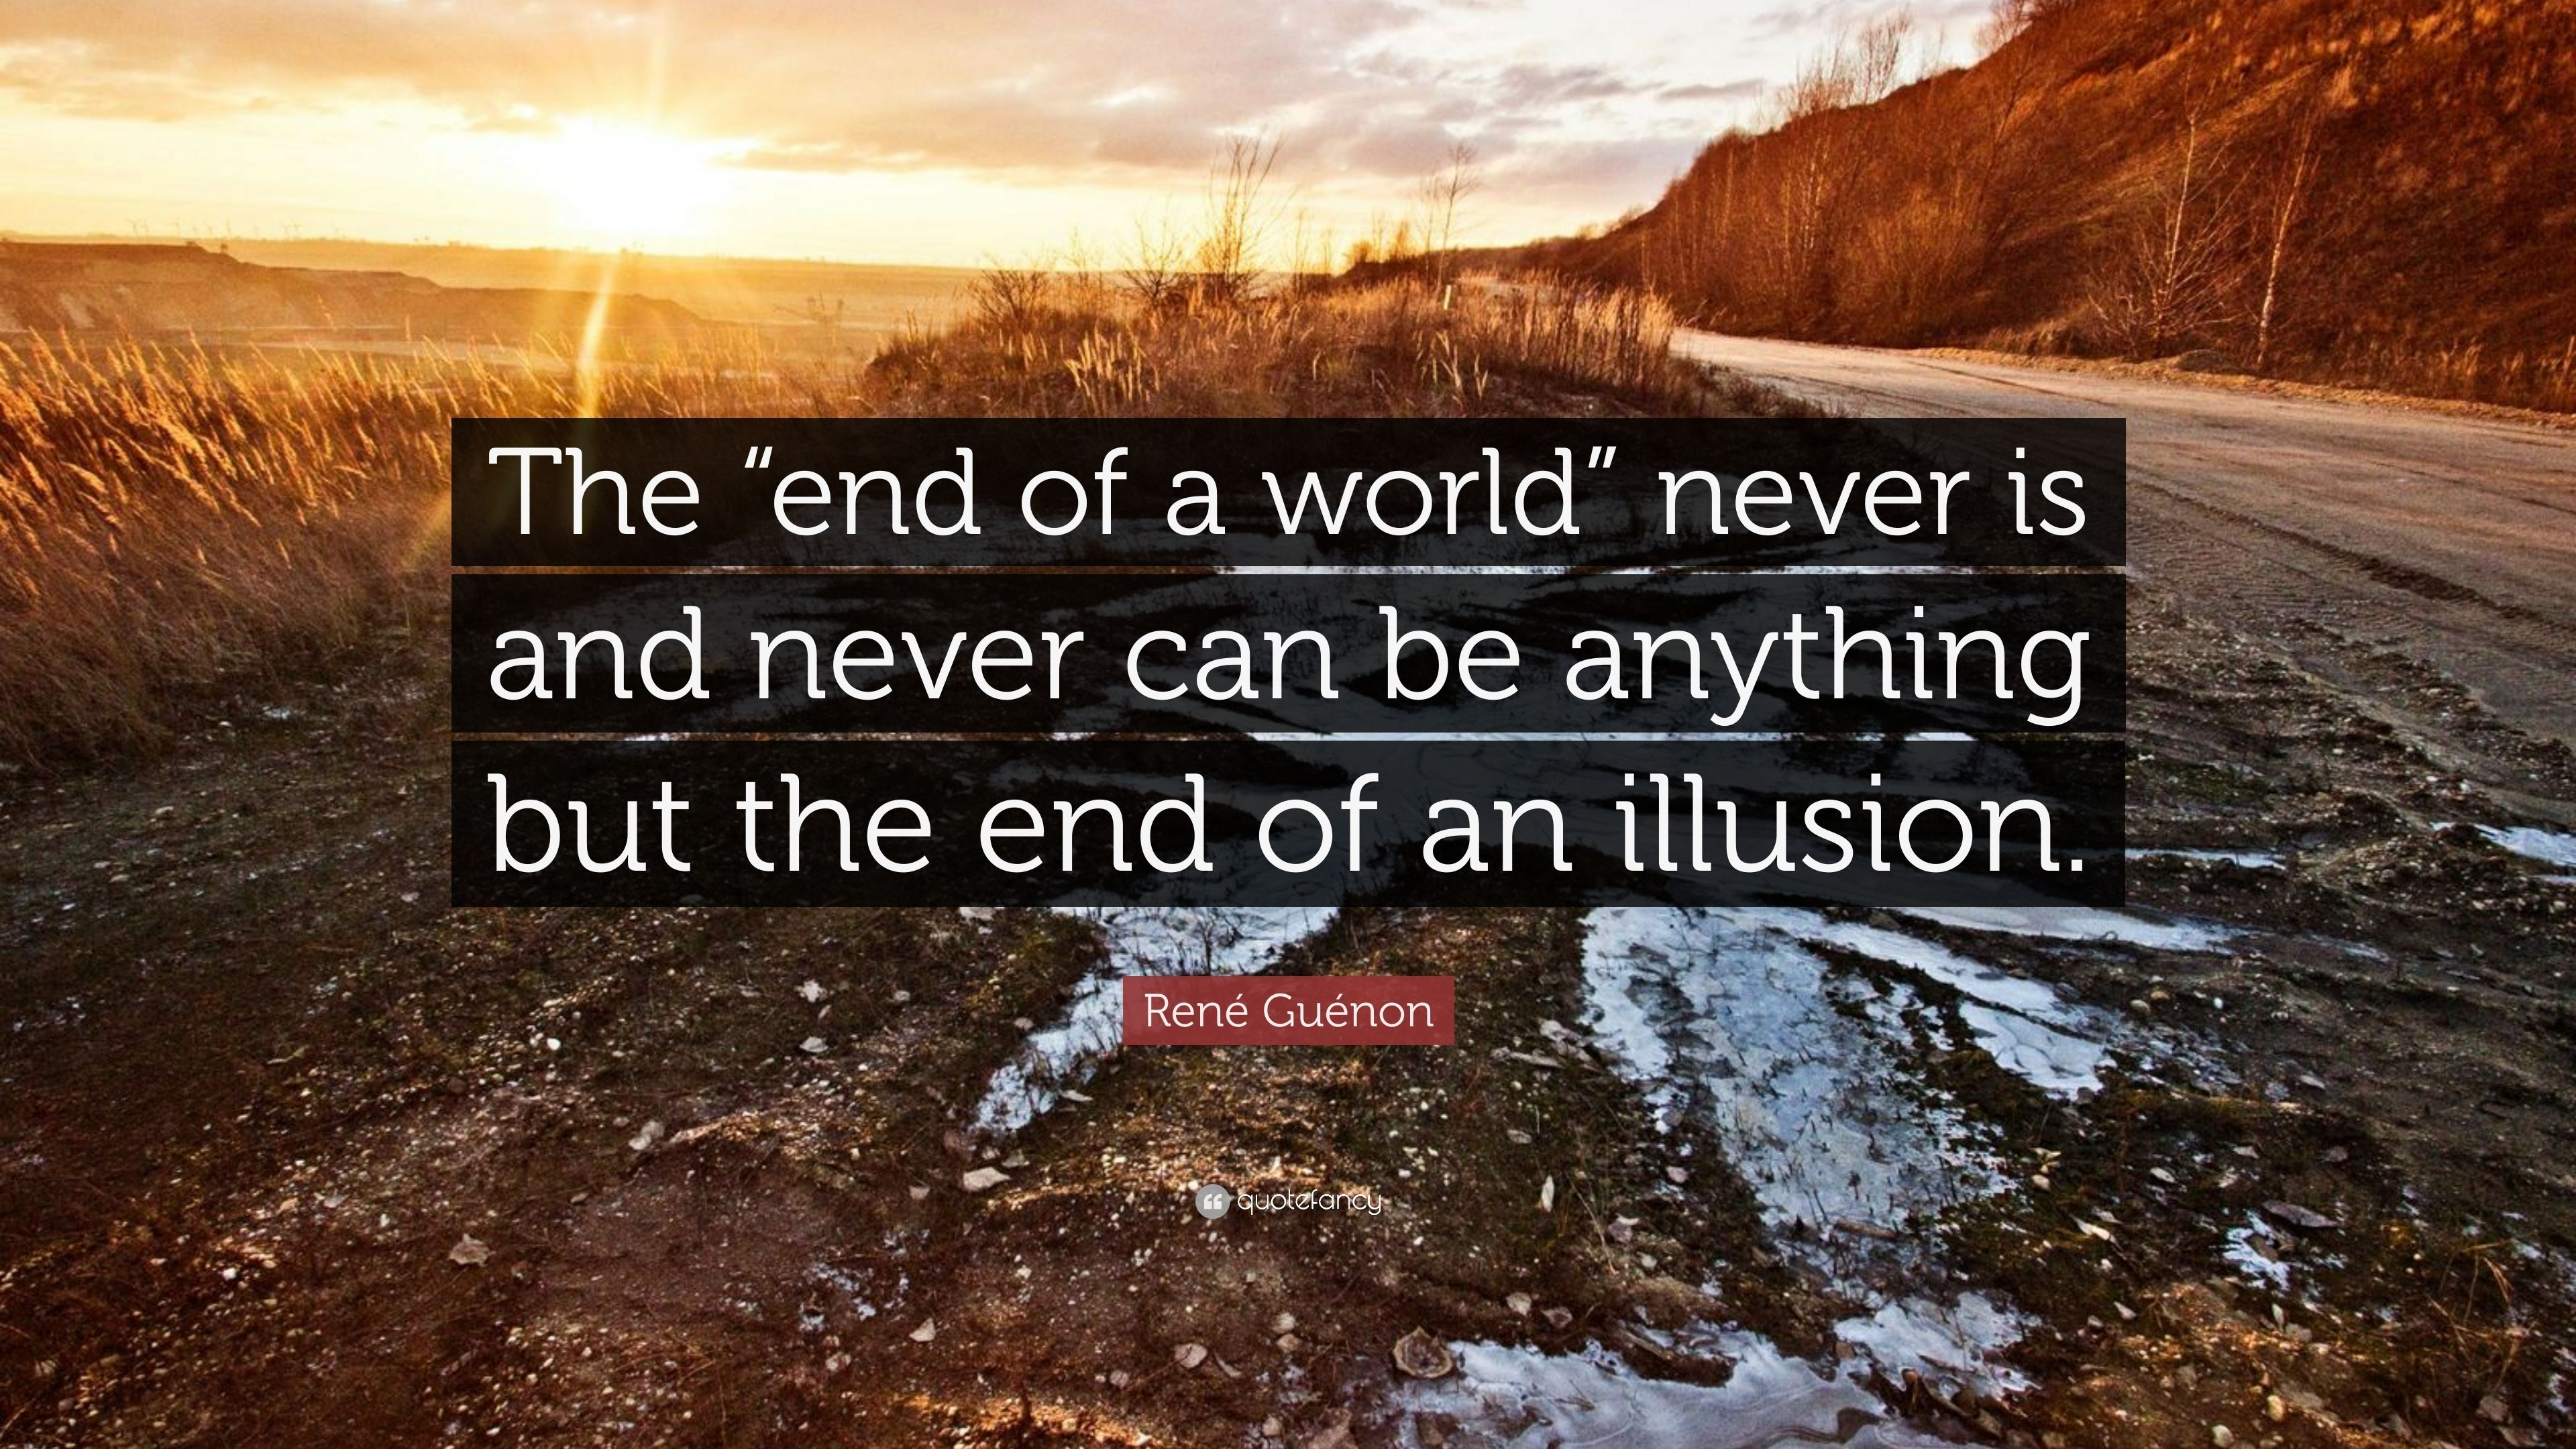 René Guénon Quote The End Of A World Never Is And Never Can Be